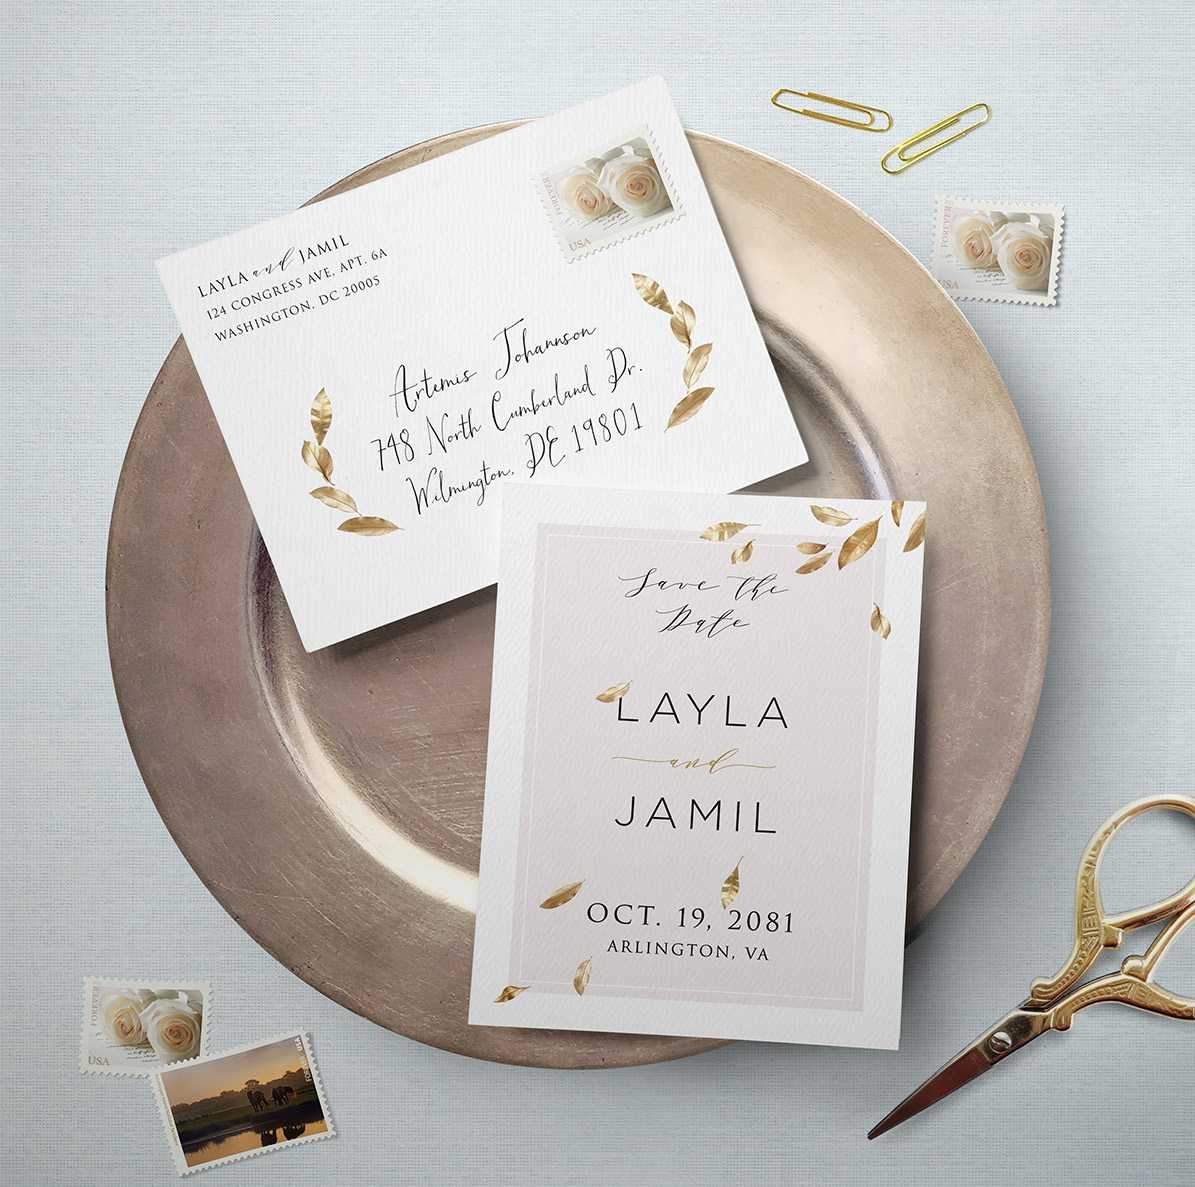 Diy Wedding Invitations With Photo 18 Free Handwriting Fonts For Your Diy Wedding Invitations A